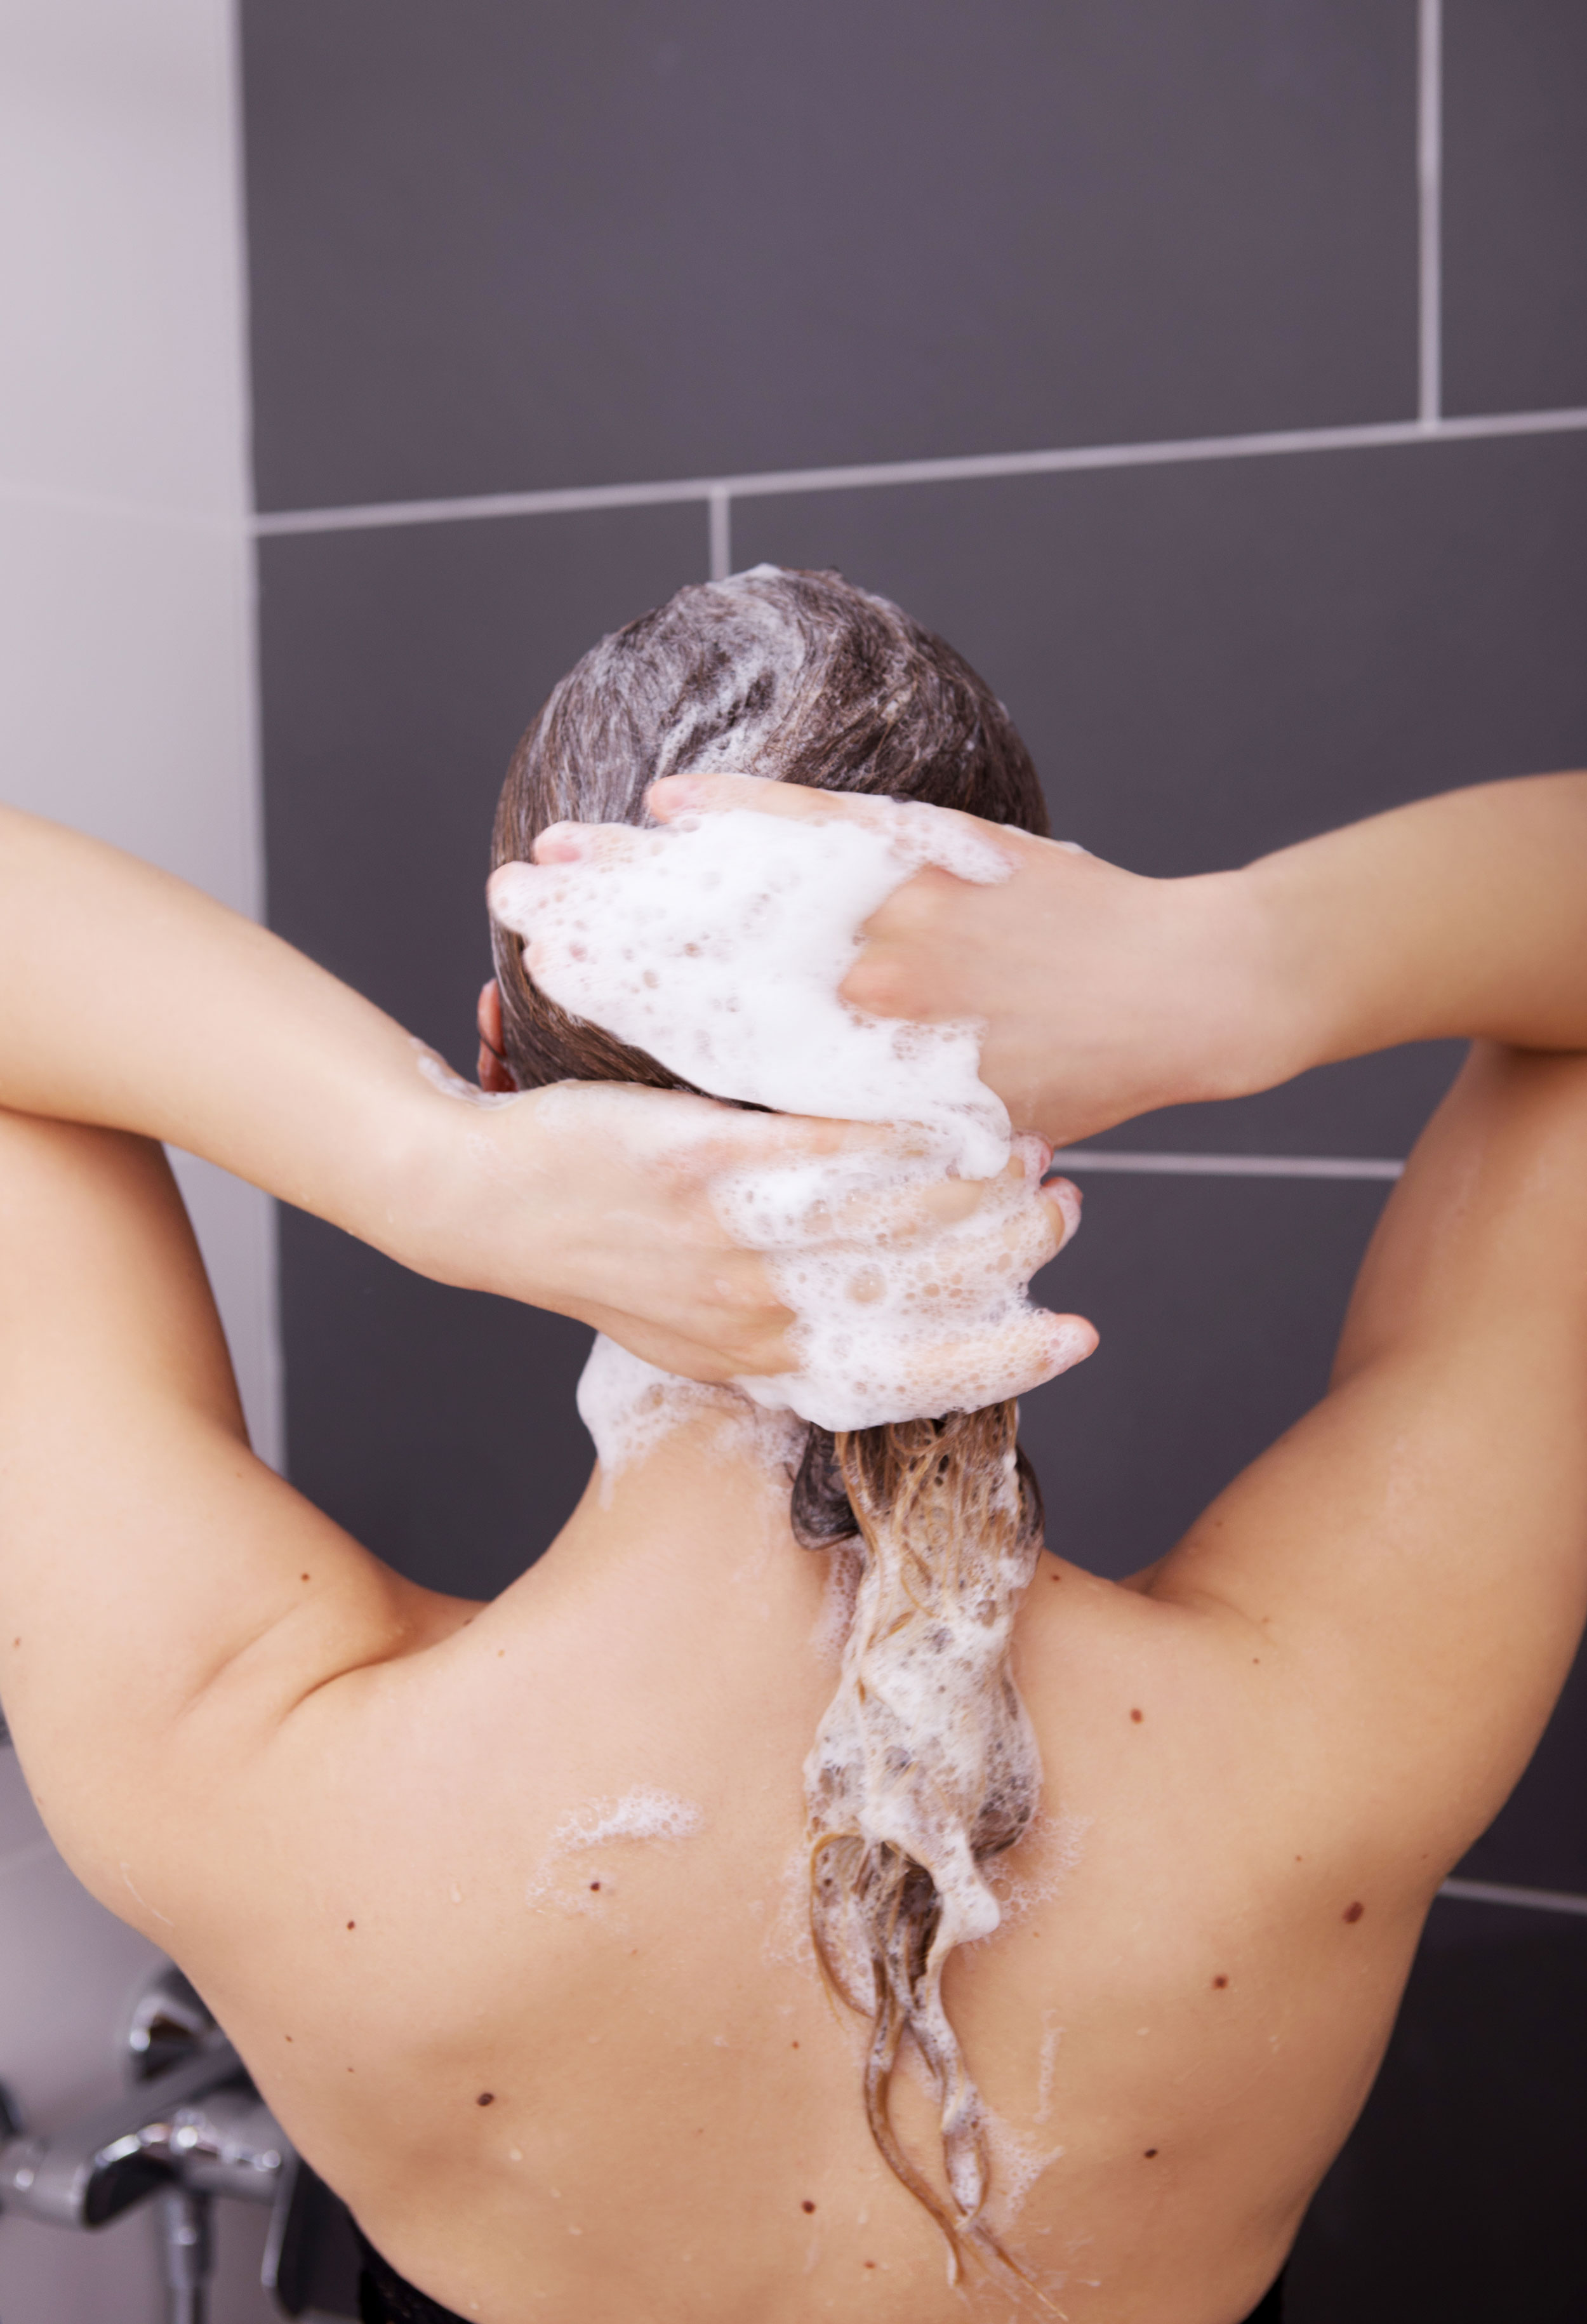 The Best Shampoos for Fighting Dandruff